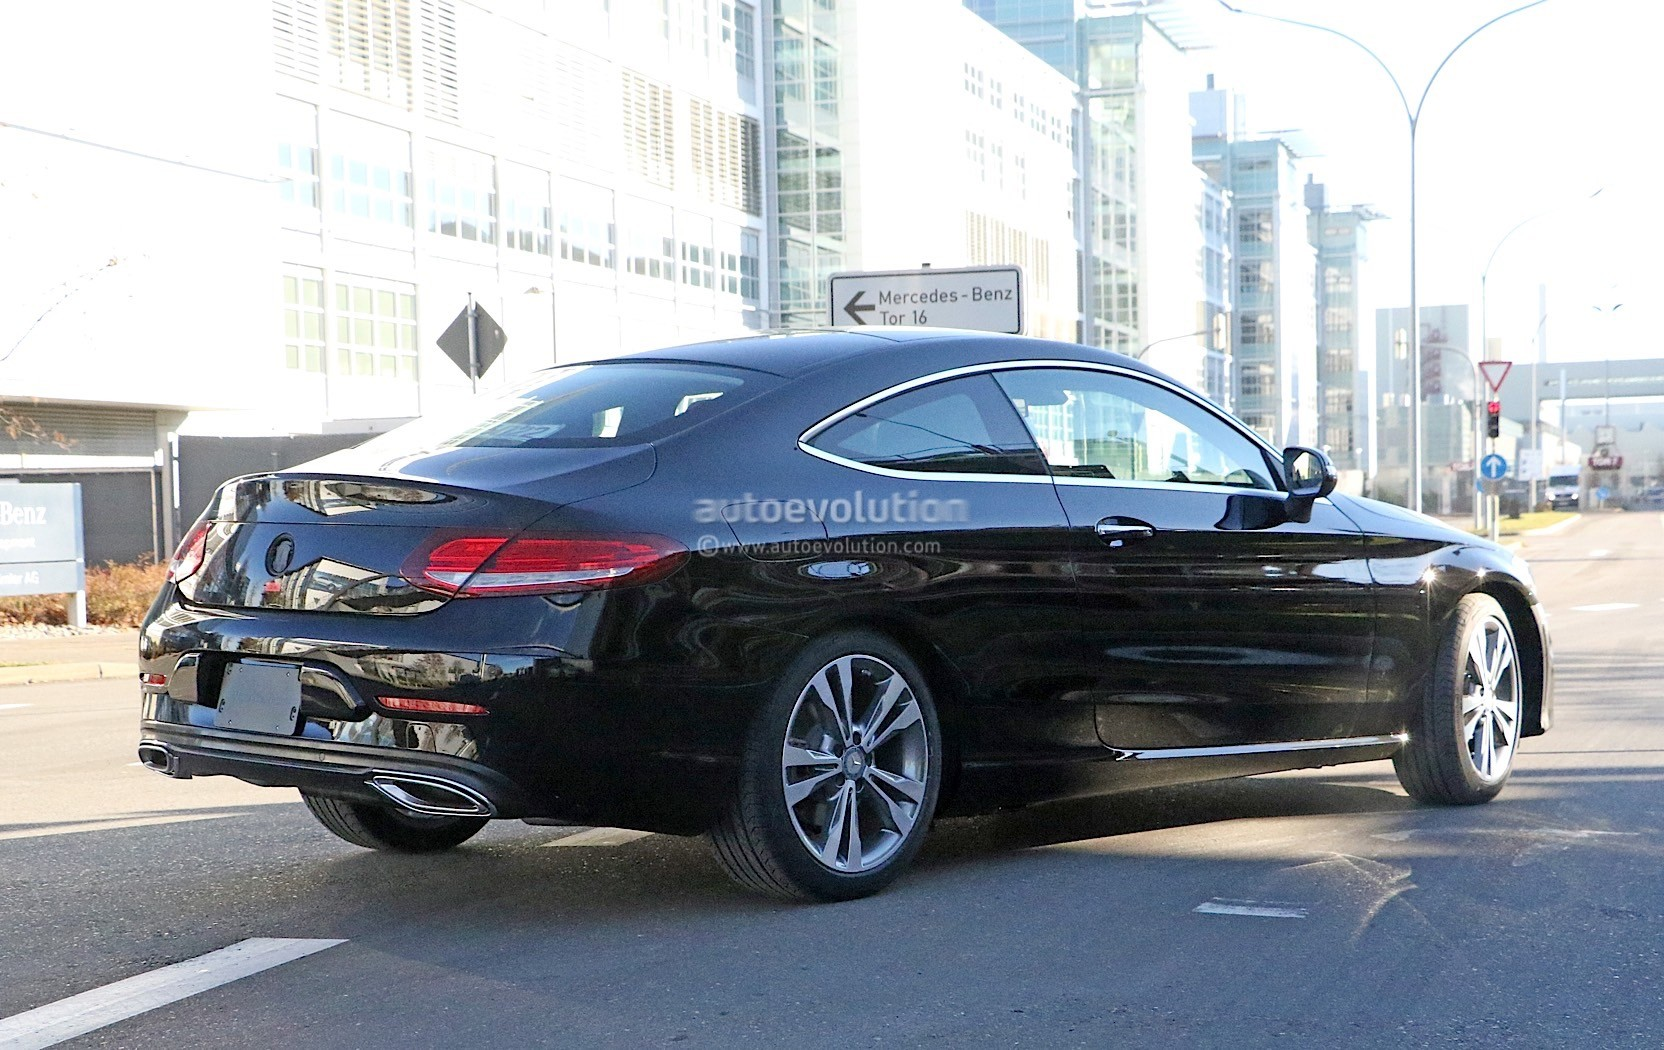 2019 Mercedes Benz C Class Coupe Facelift Shows All New